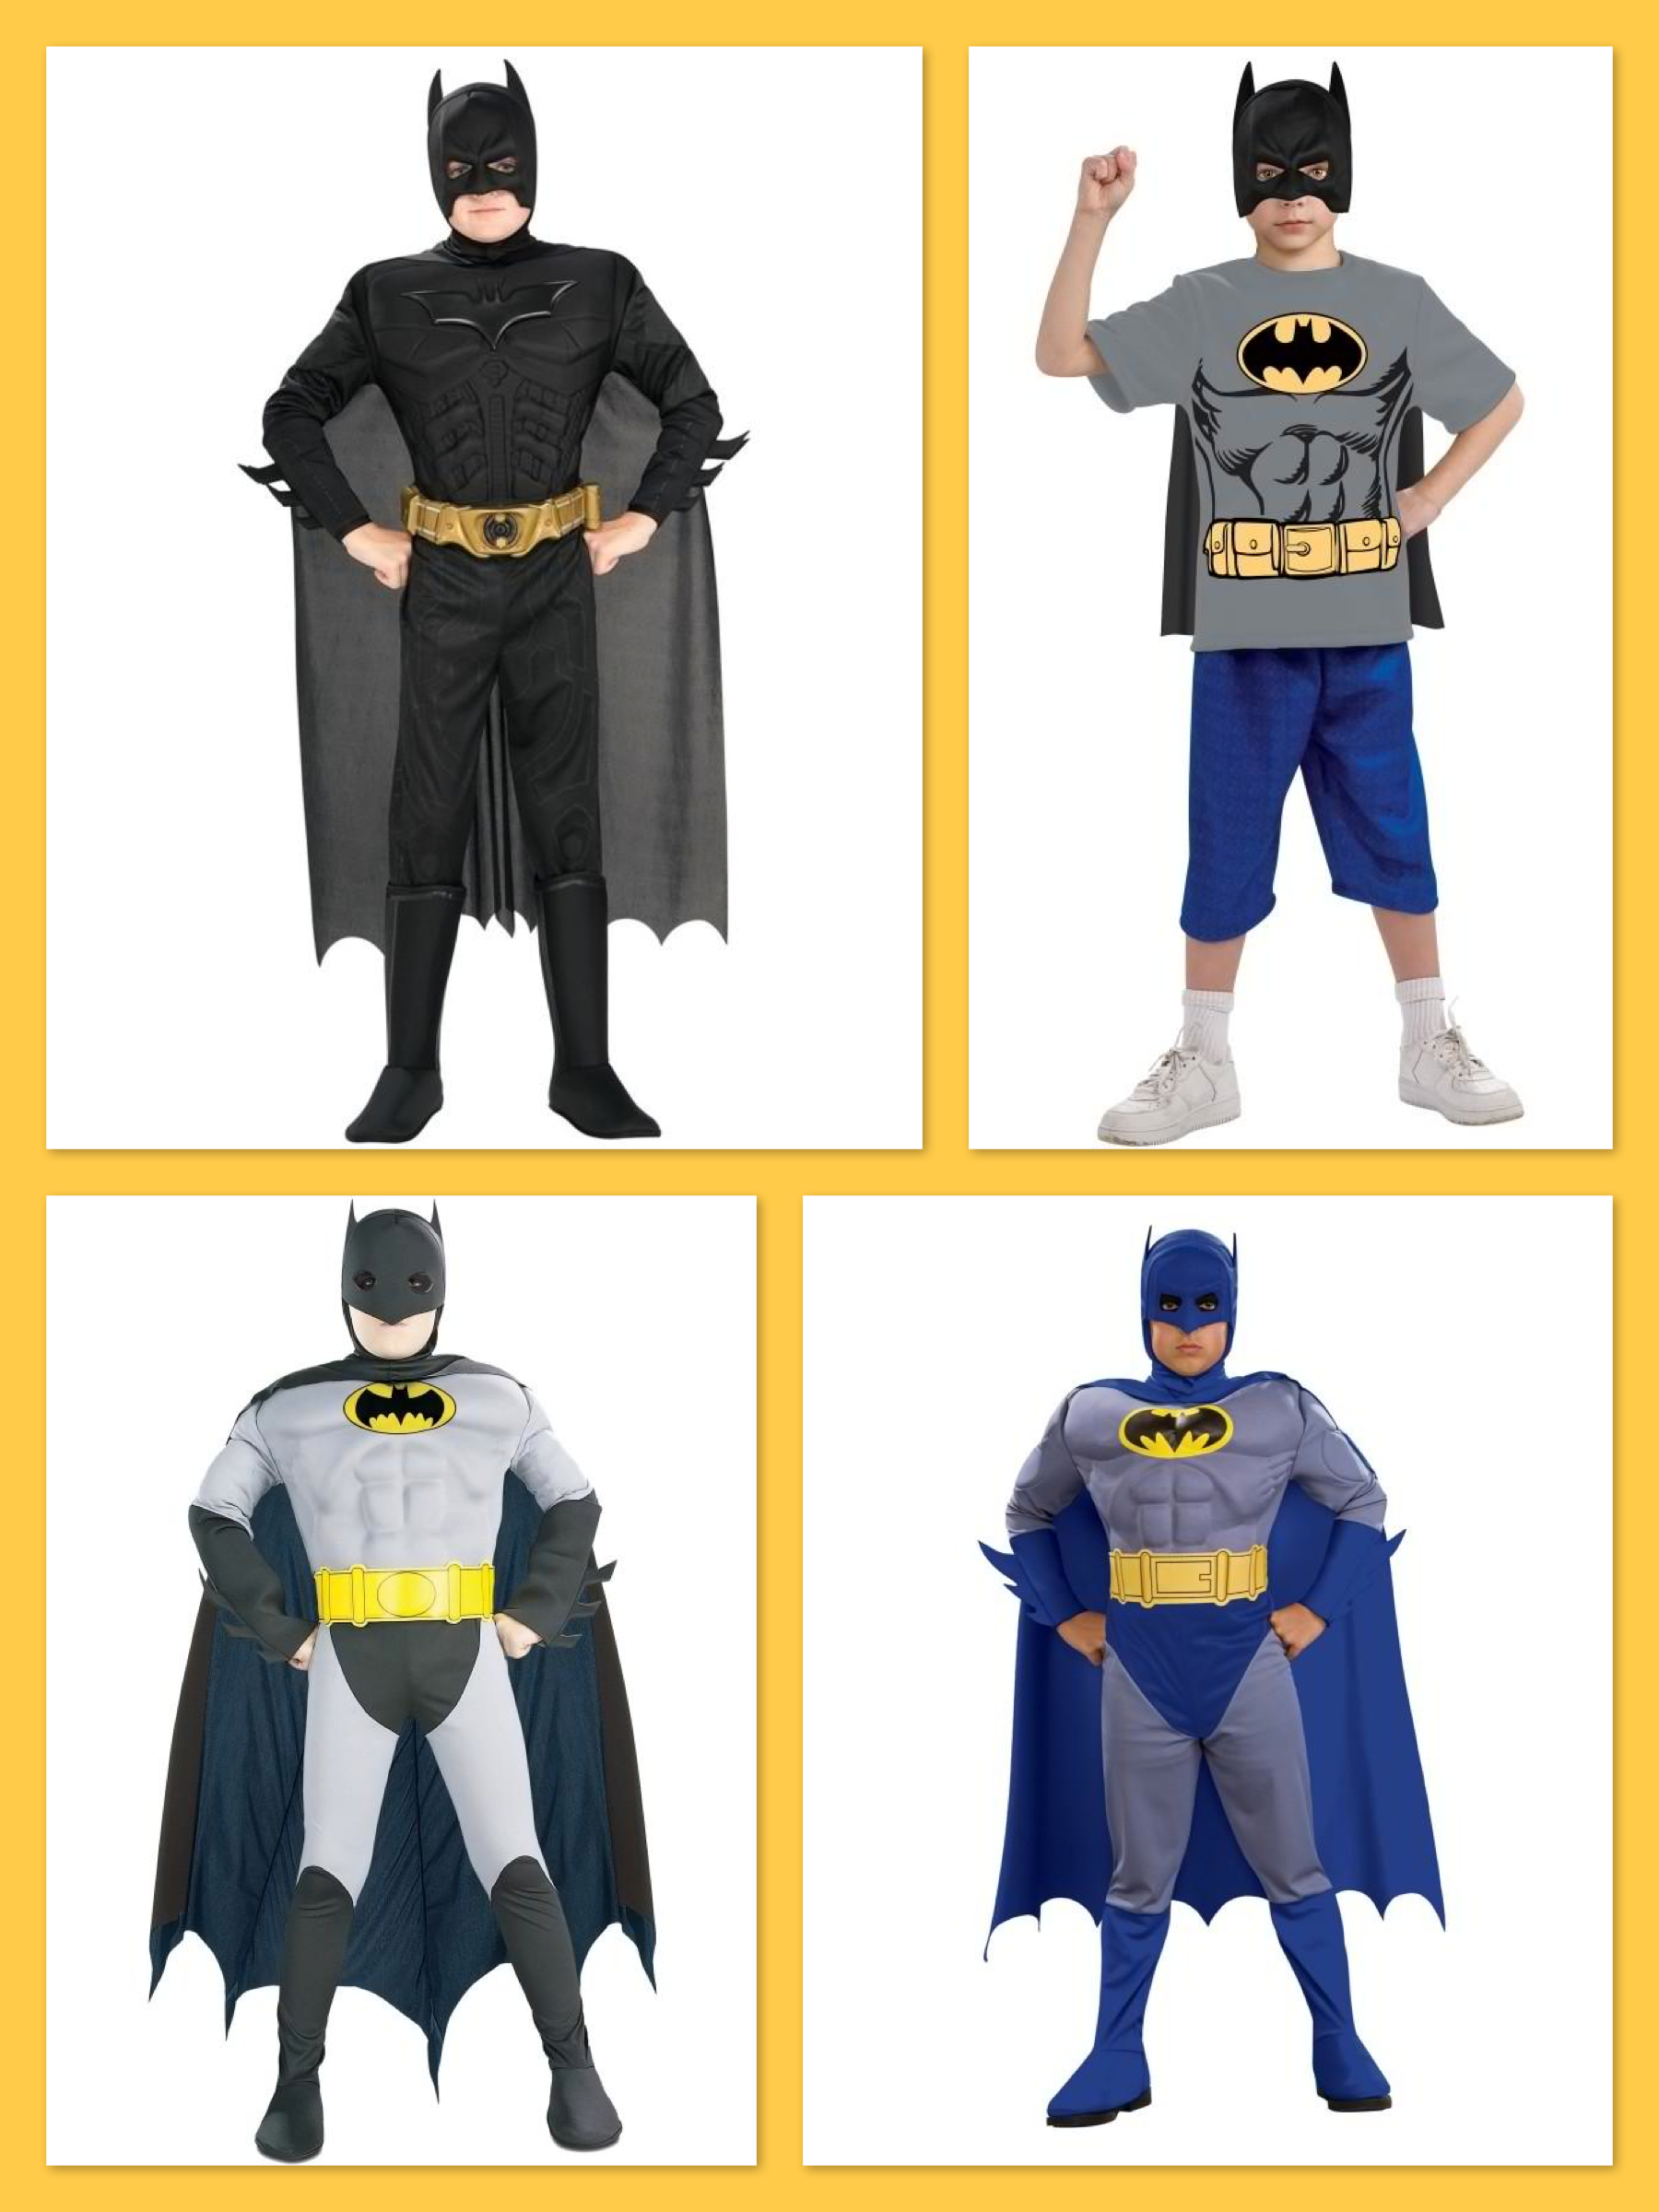 Batman Boys Costumes, Top Trending Halloween Costumes